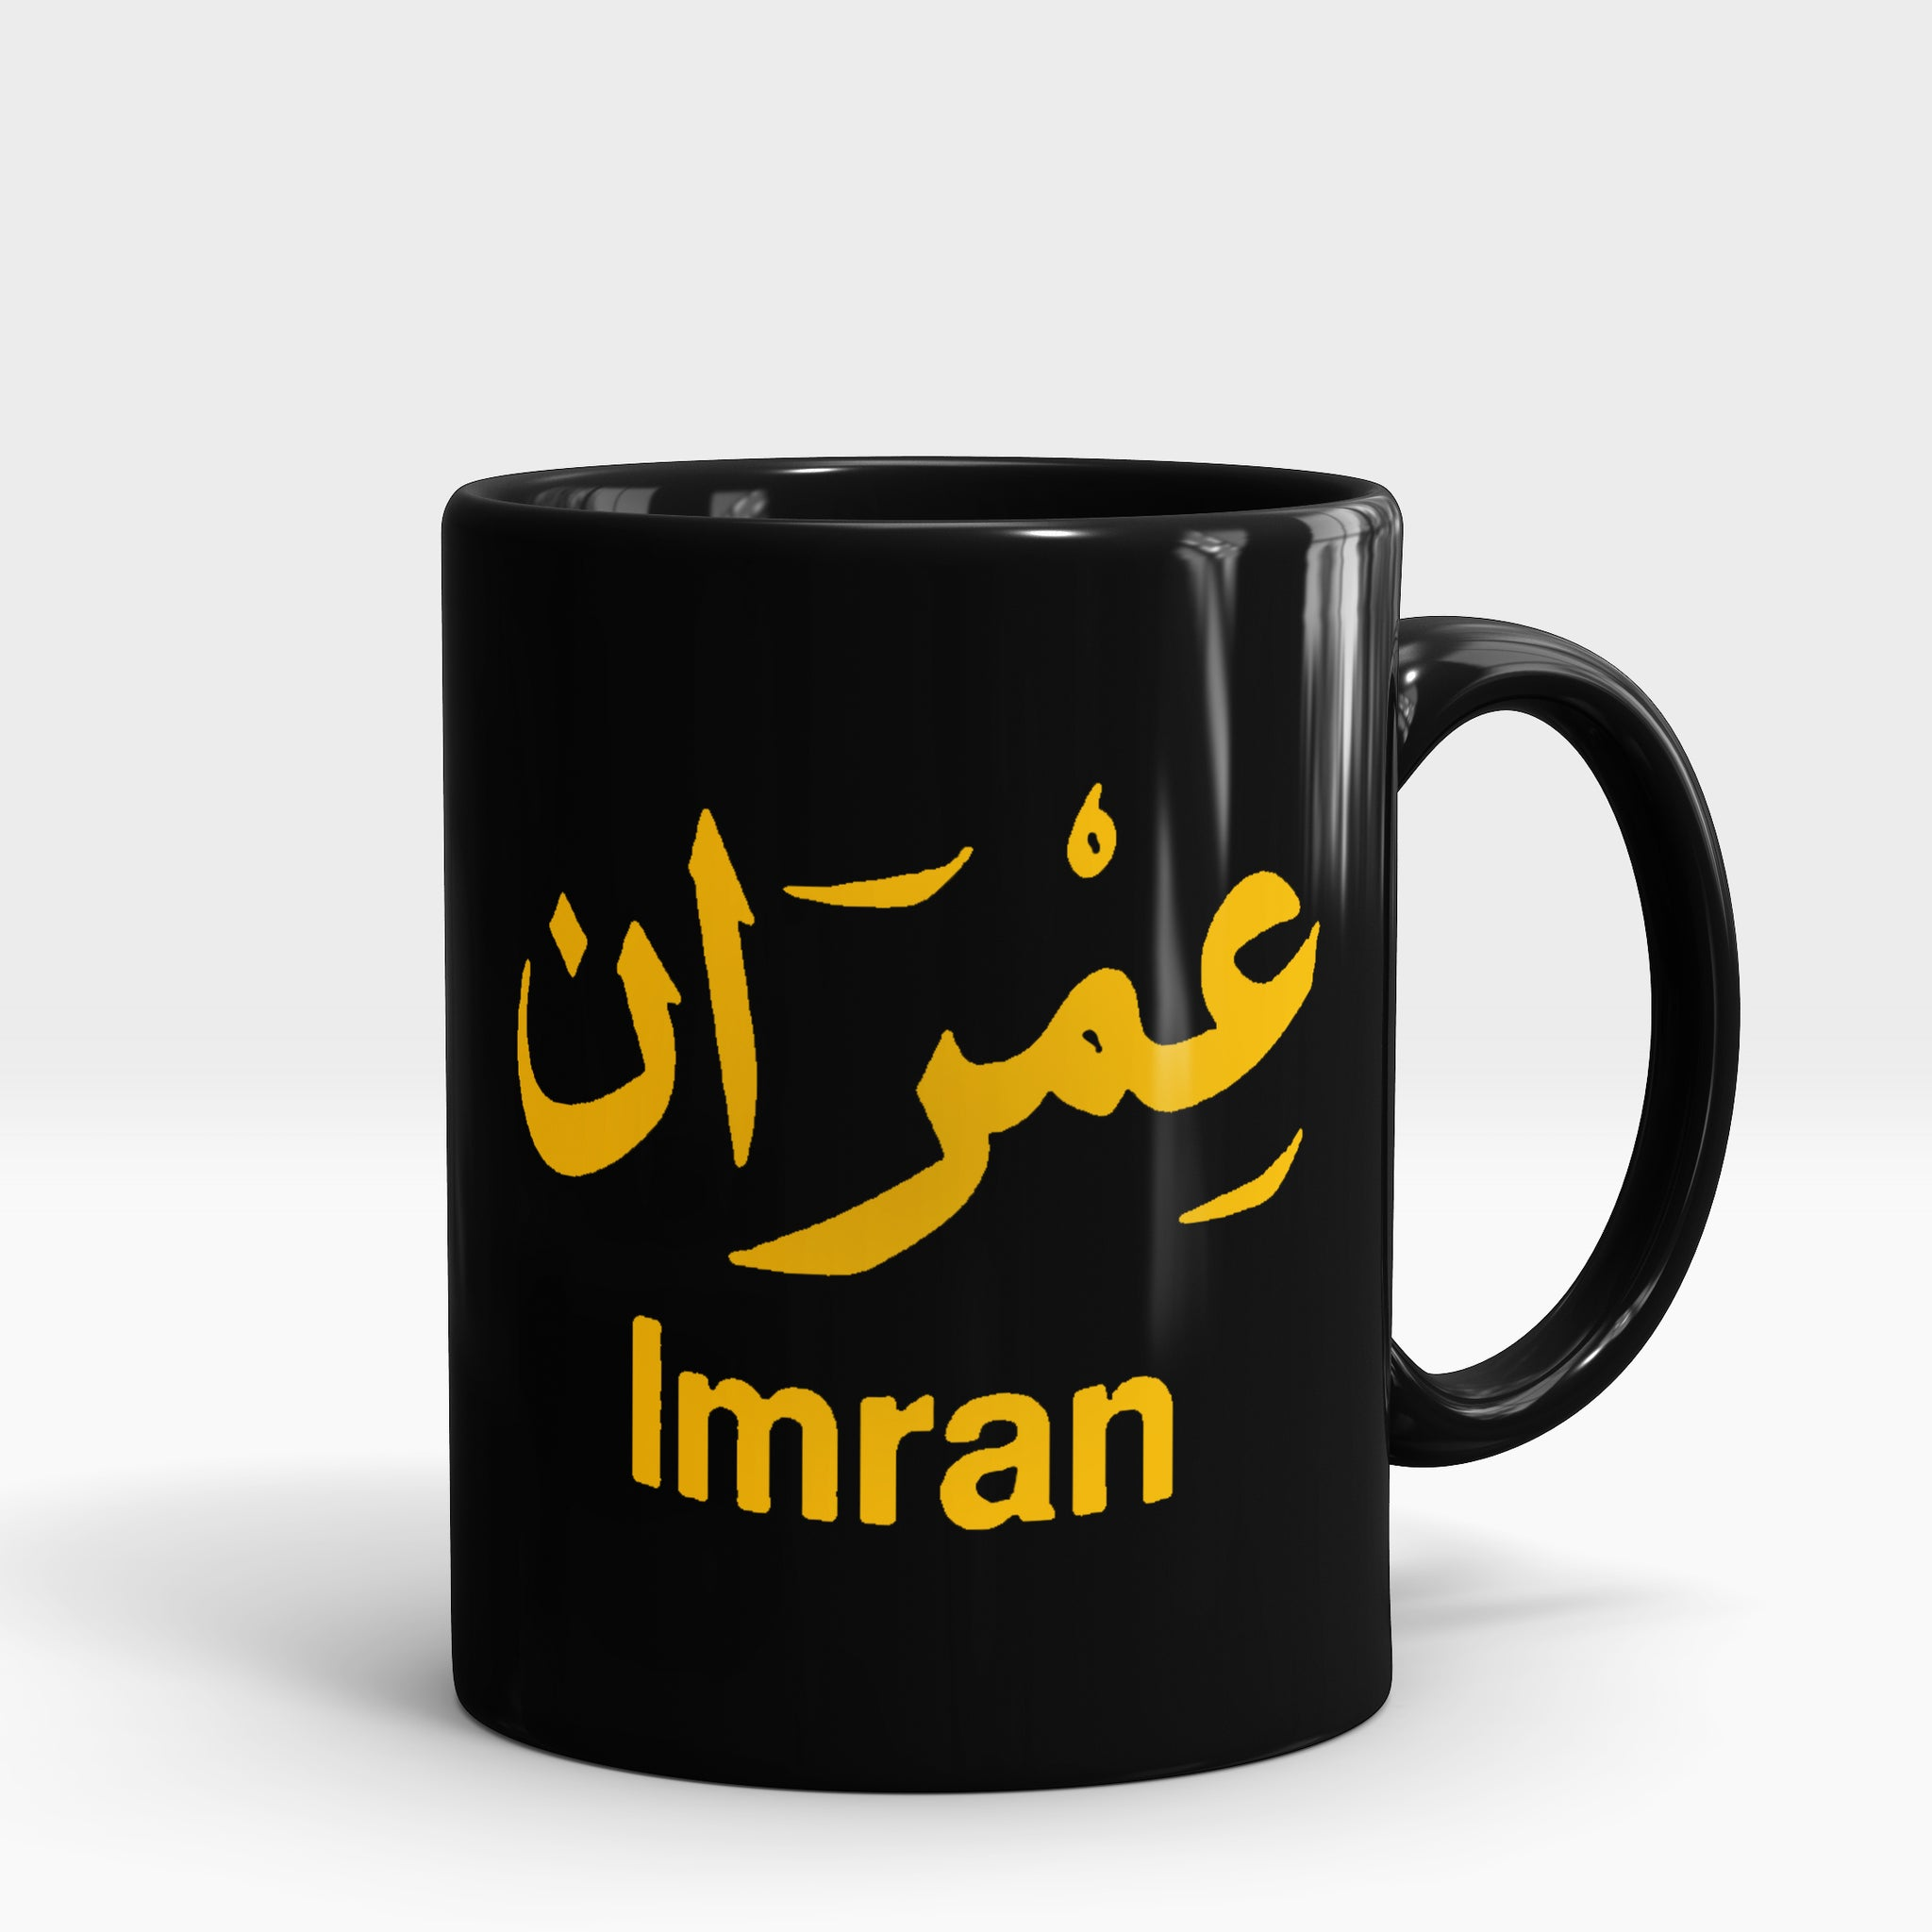 Gold Mug With Your Name